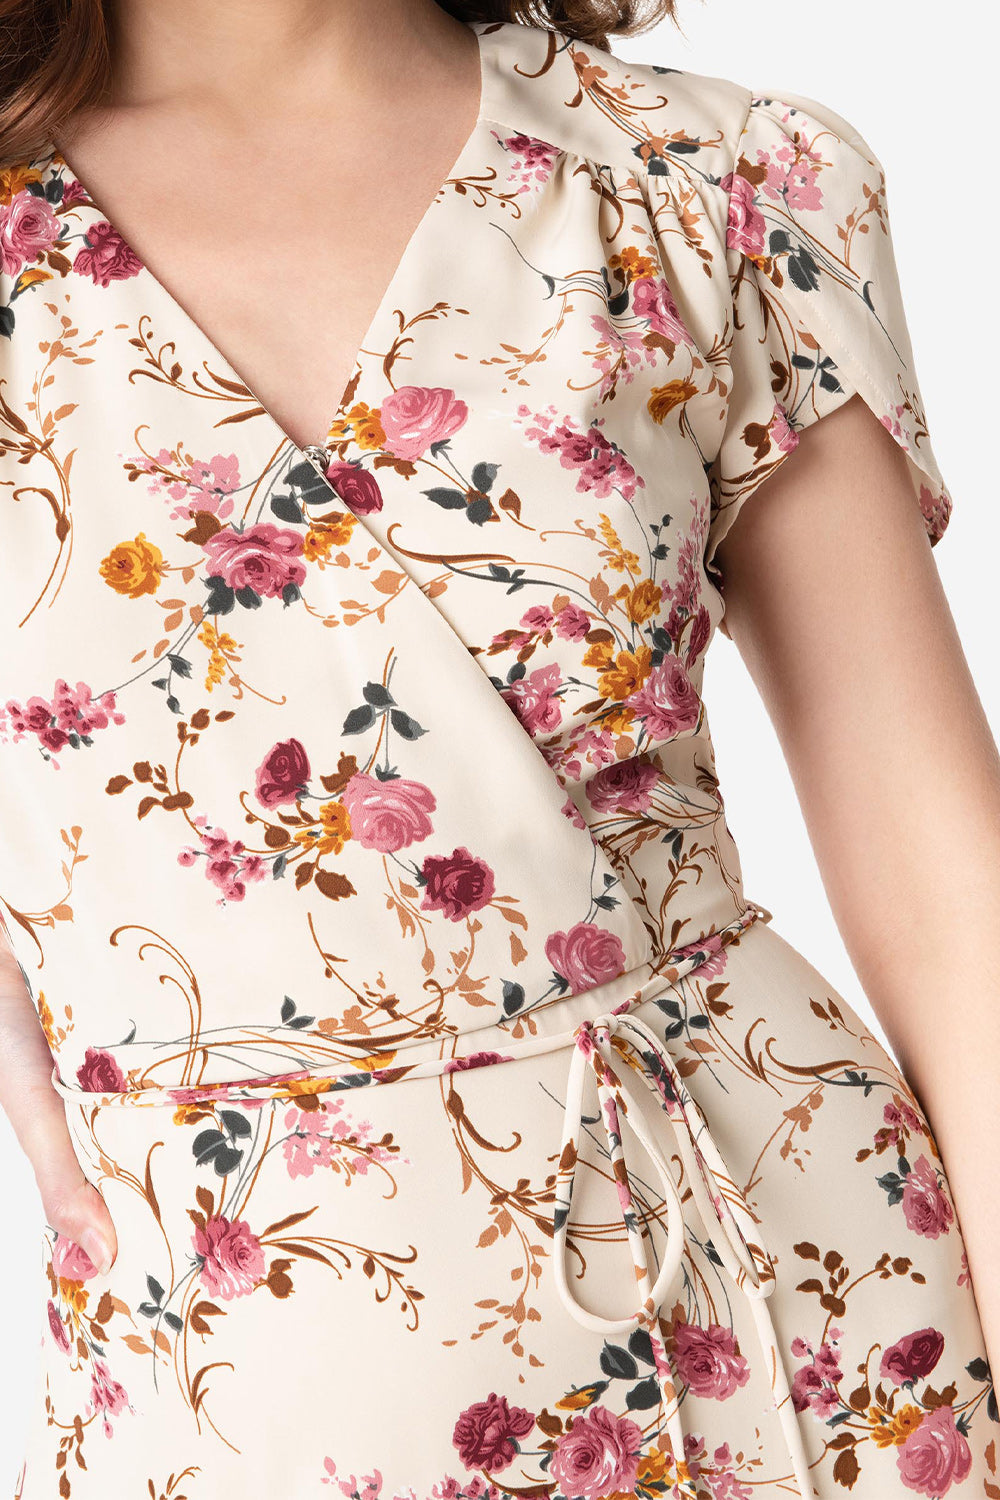 Beige & Pink Floral Print Hide & Go Chic Midi Dress by Smak Parlour